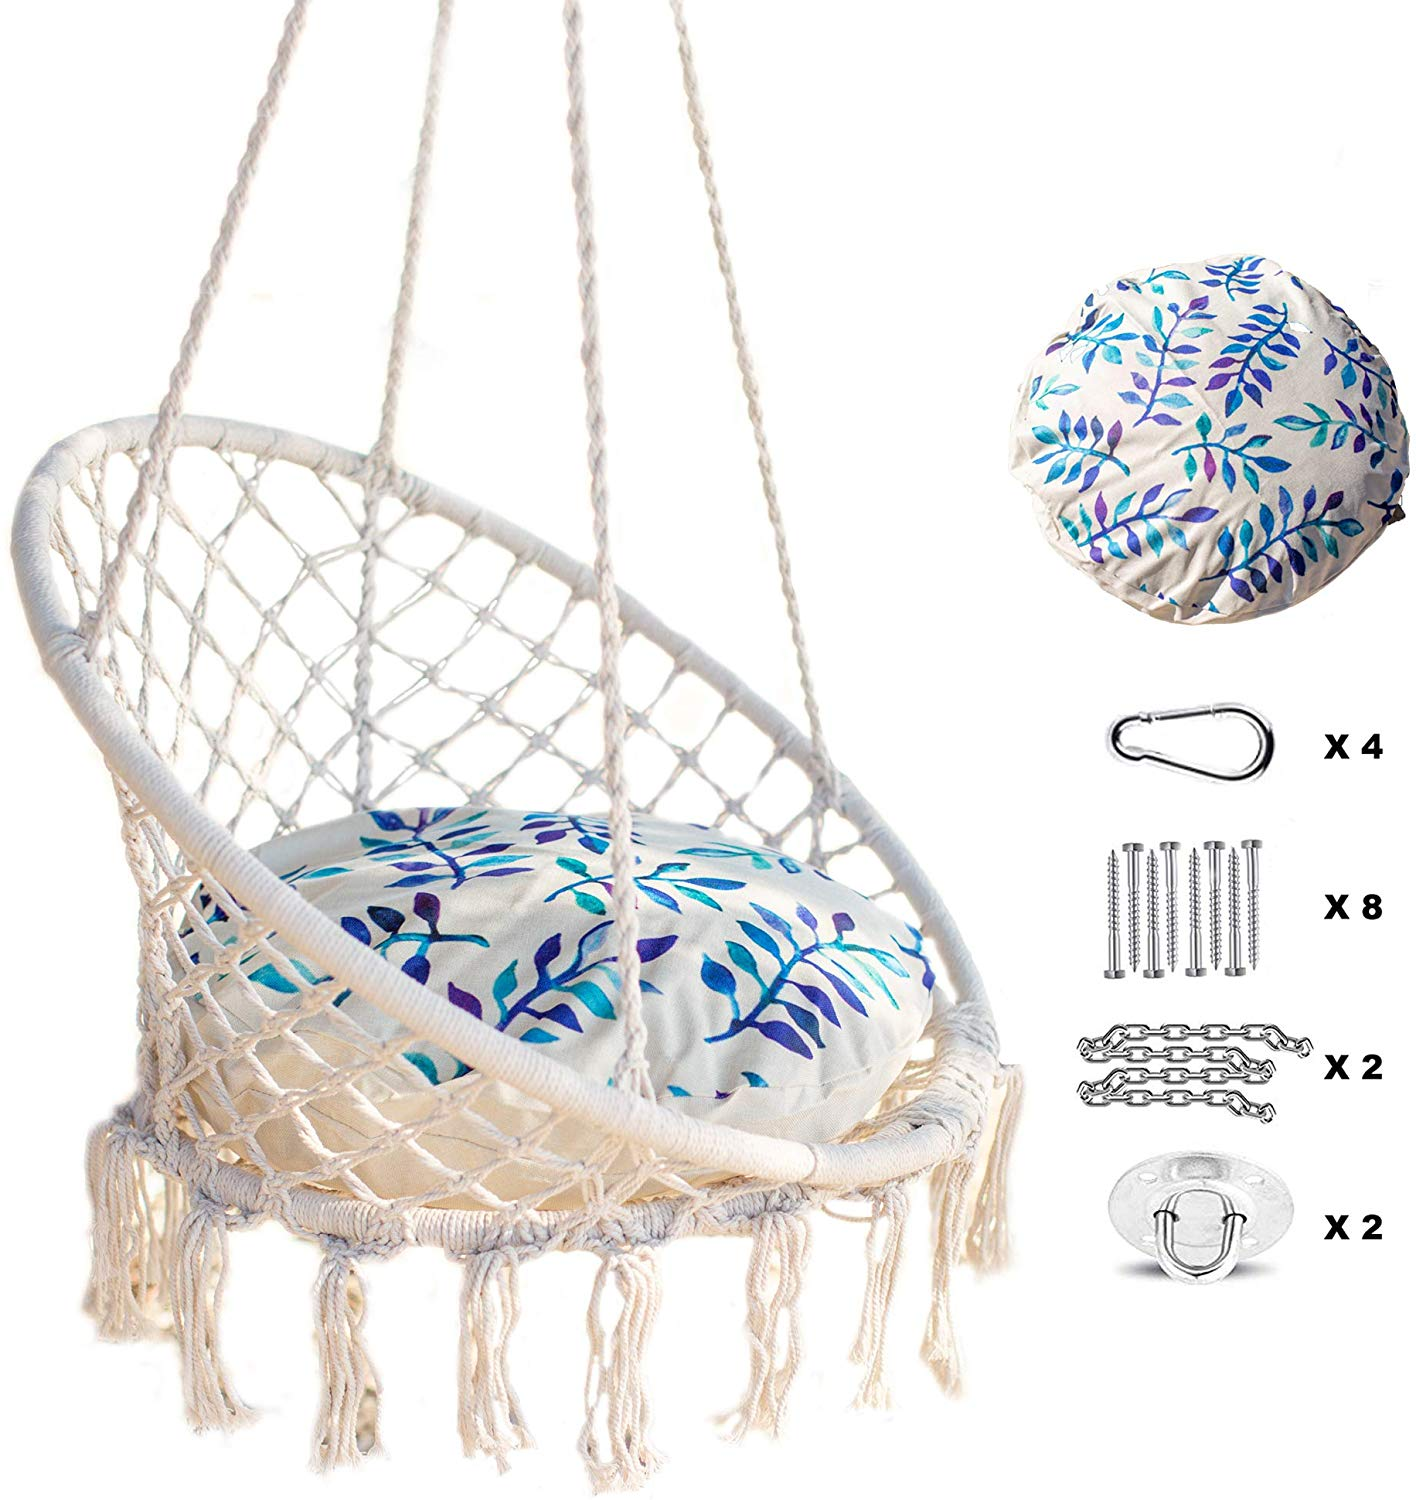 Nooksta Macrame Hanging Chair